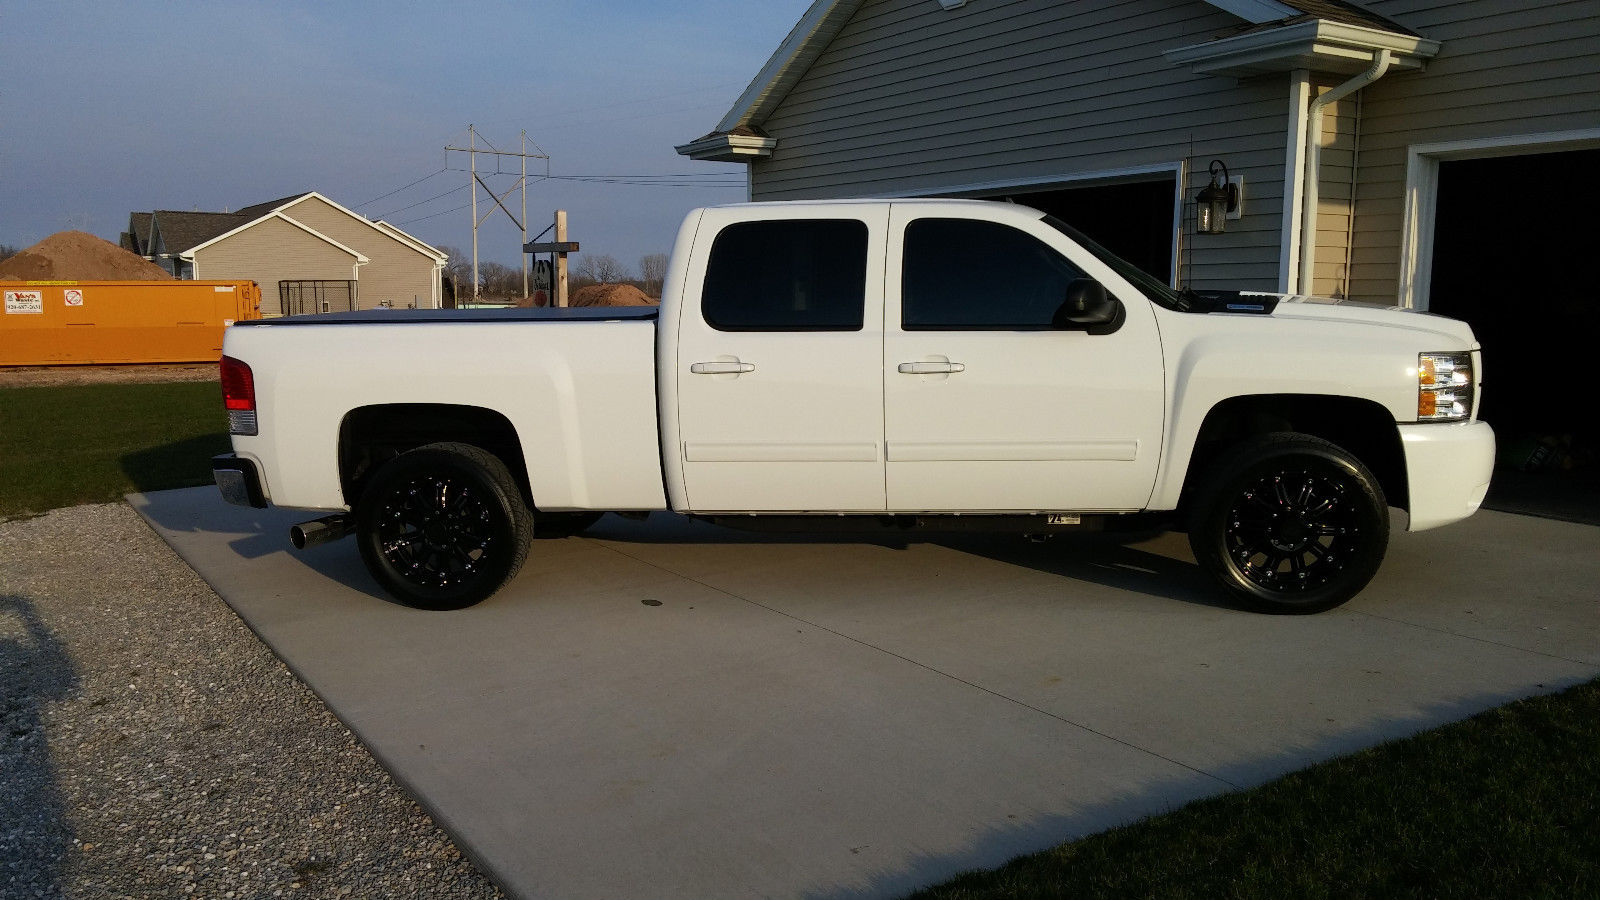 2009 chevrolet silverado 2500 crew cab for sale. Black Bedroom Furniture Sets. Home Design Ideas